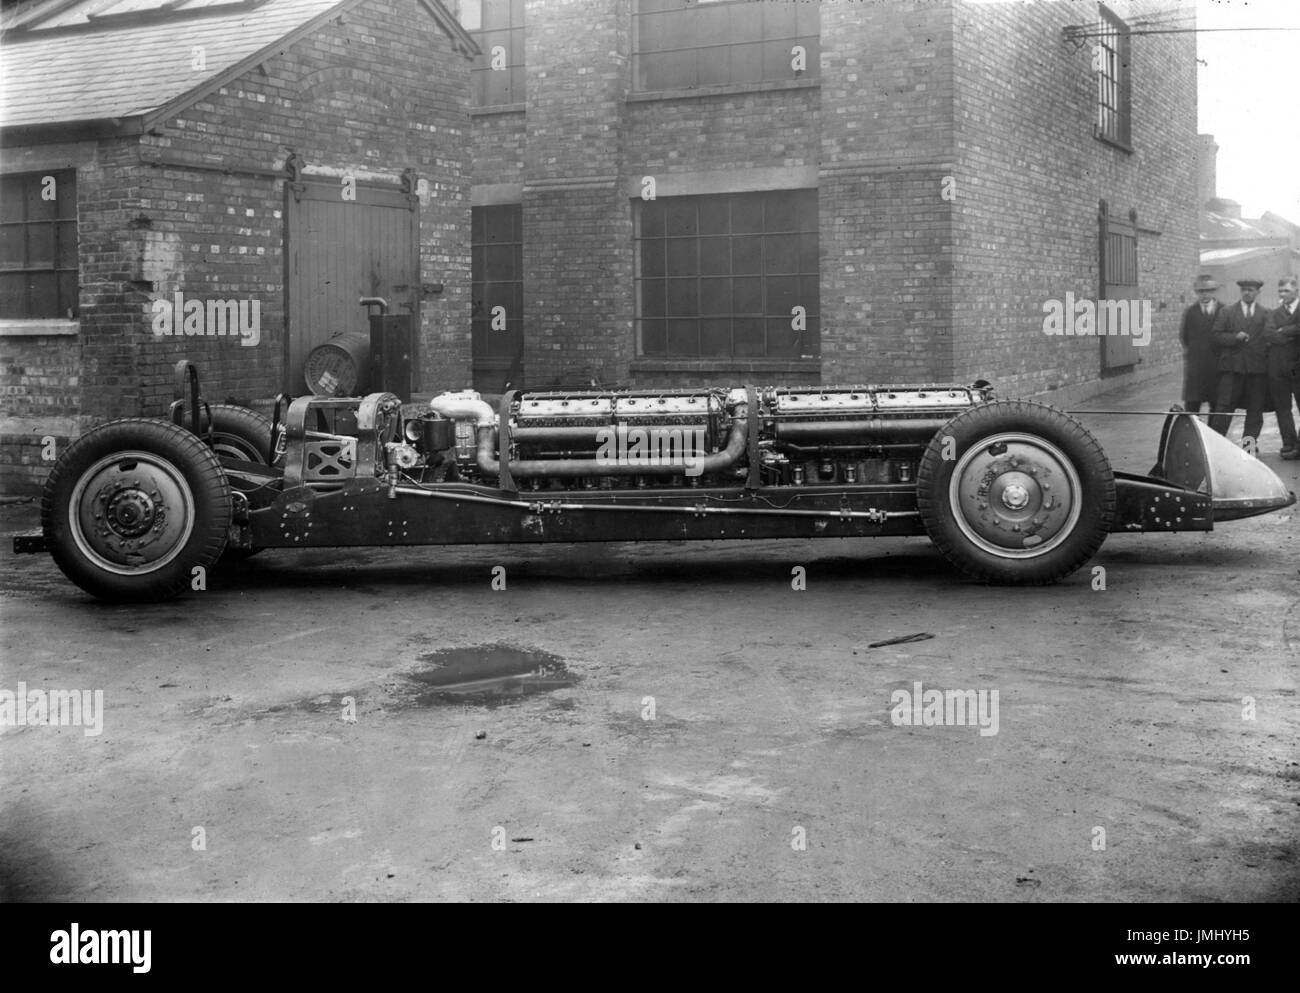 Silver Bullett land speed record car Chassis at factory in Wolverhampton - Stock Image